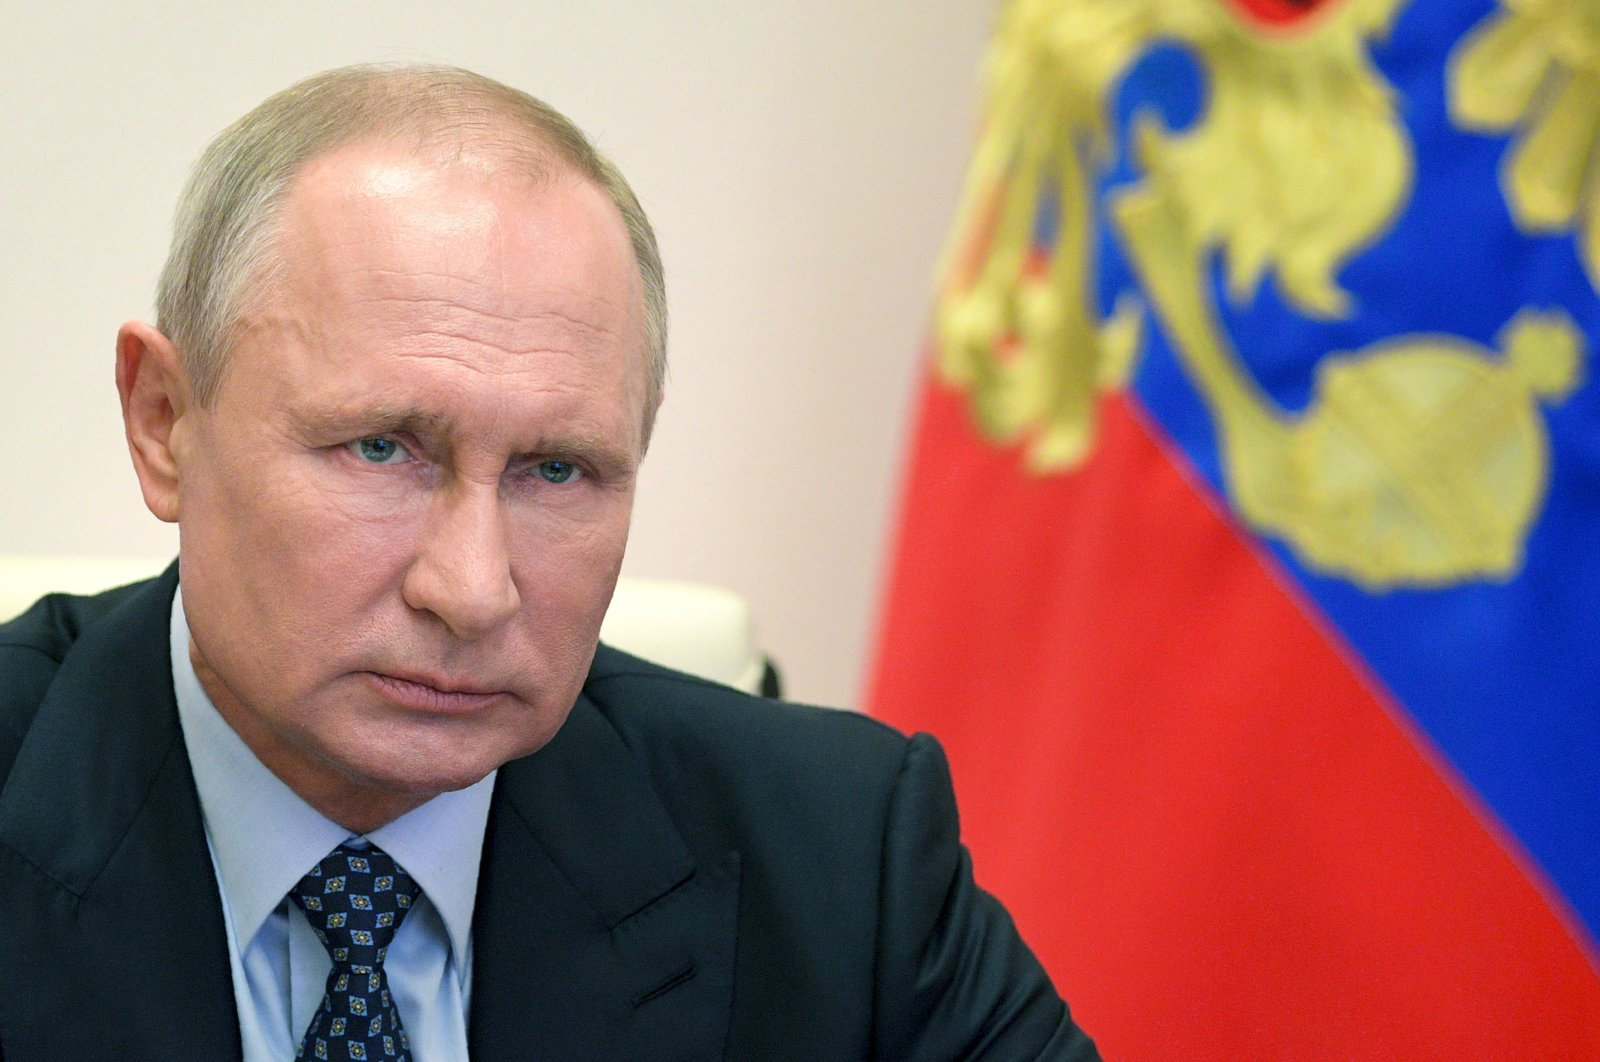 Russian President Vladimir Putin takes part in a meeting on development of the Russian fuel and energy industry via a video conference at the Novo-Ogaryovo residence outside Moscow, Russia, Wednesday, April 29, 2020. (AP Photo)